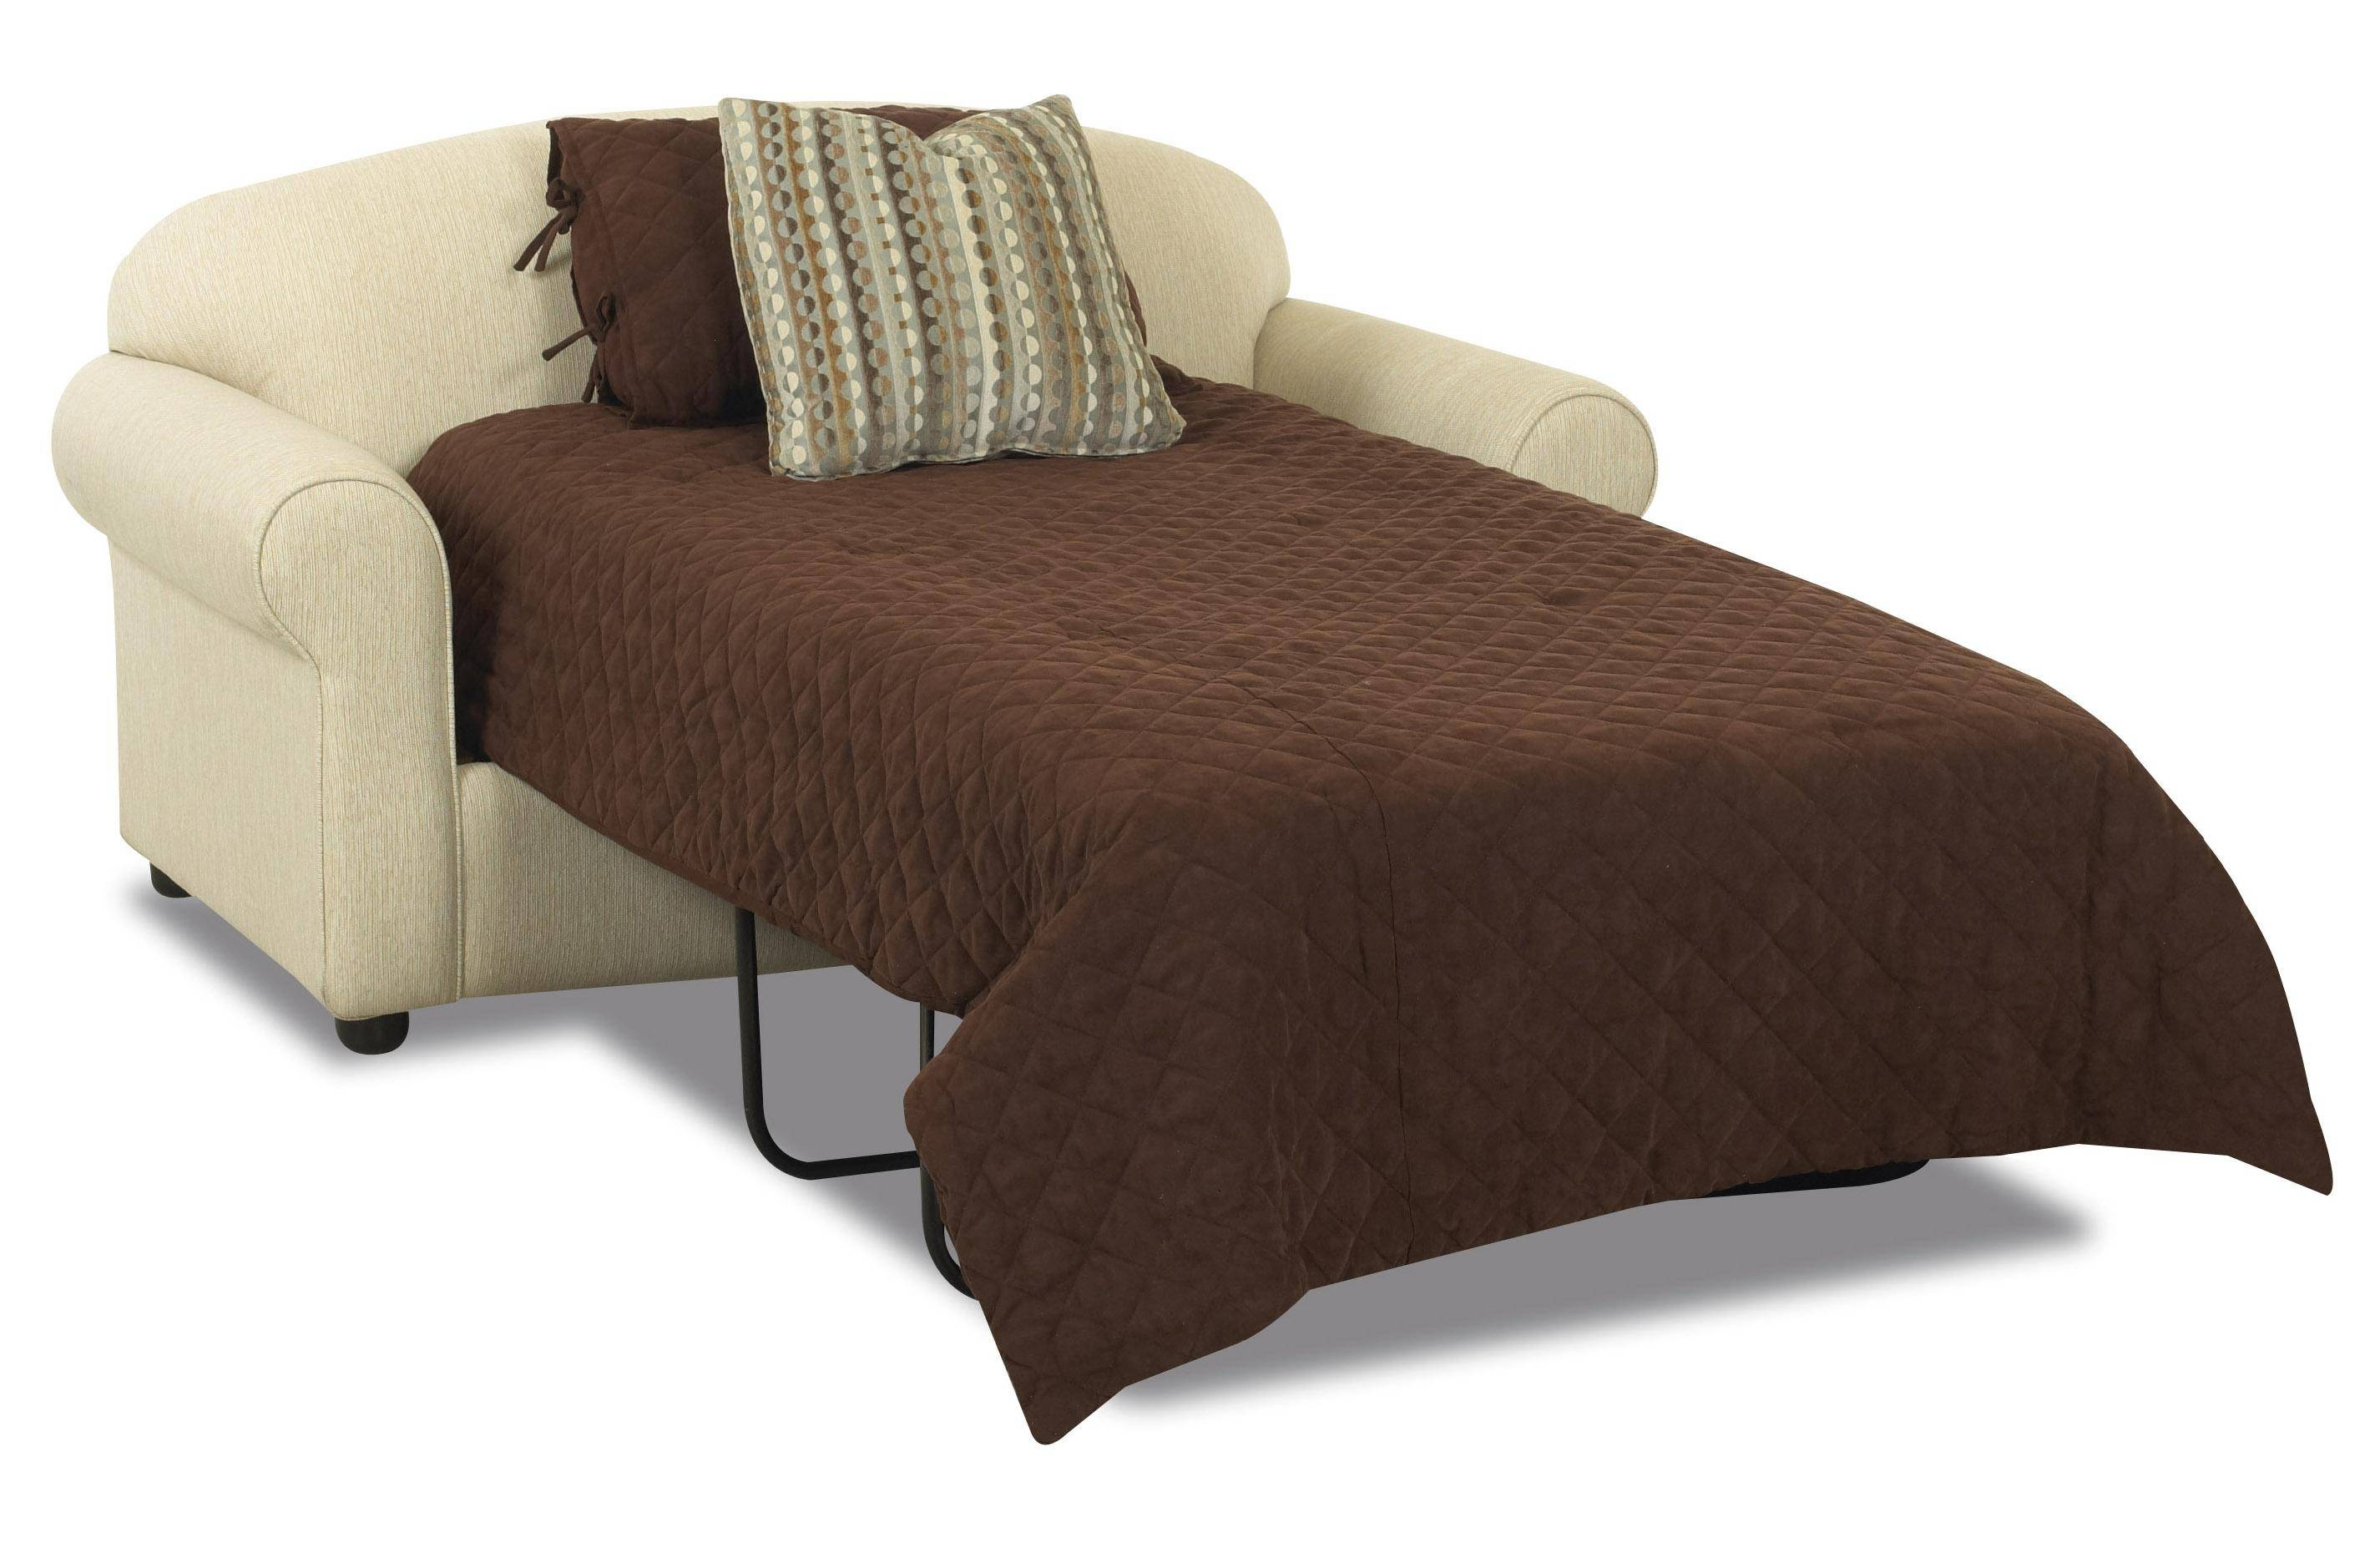 Klaussner Possibilities Innerspring Twin Sleeper Loveseat - Dunk inside Twin Sleeper Sofa Chairs (Image 12 of 30)